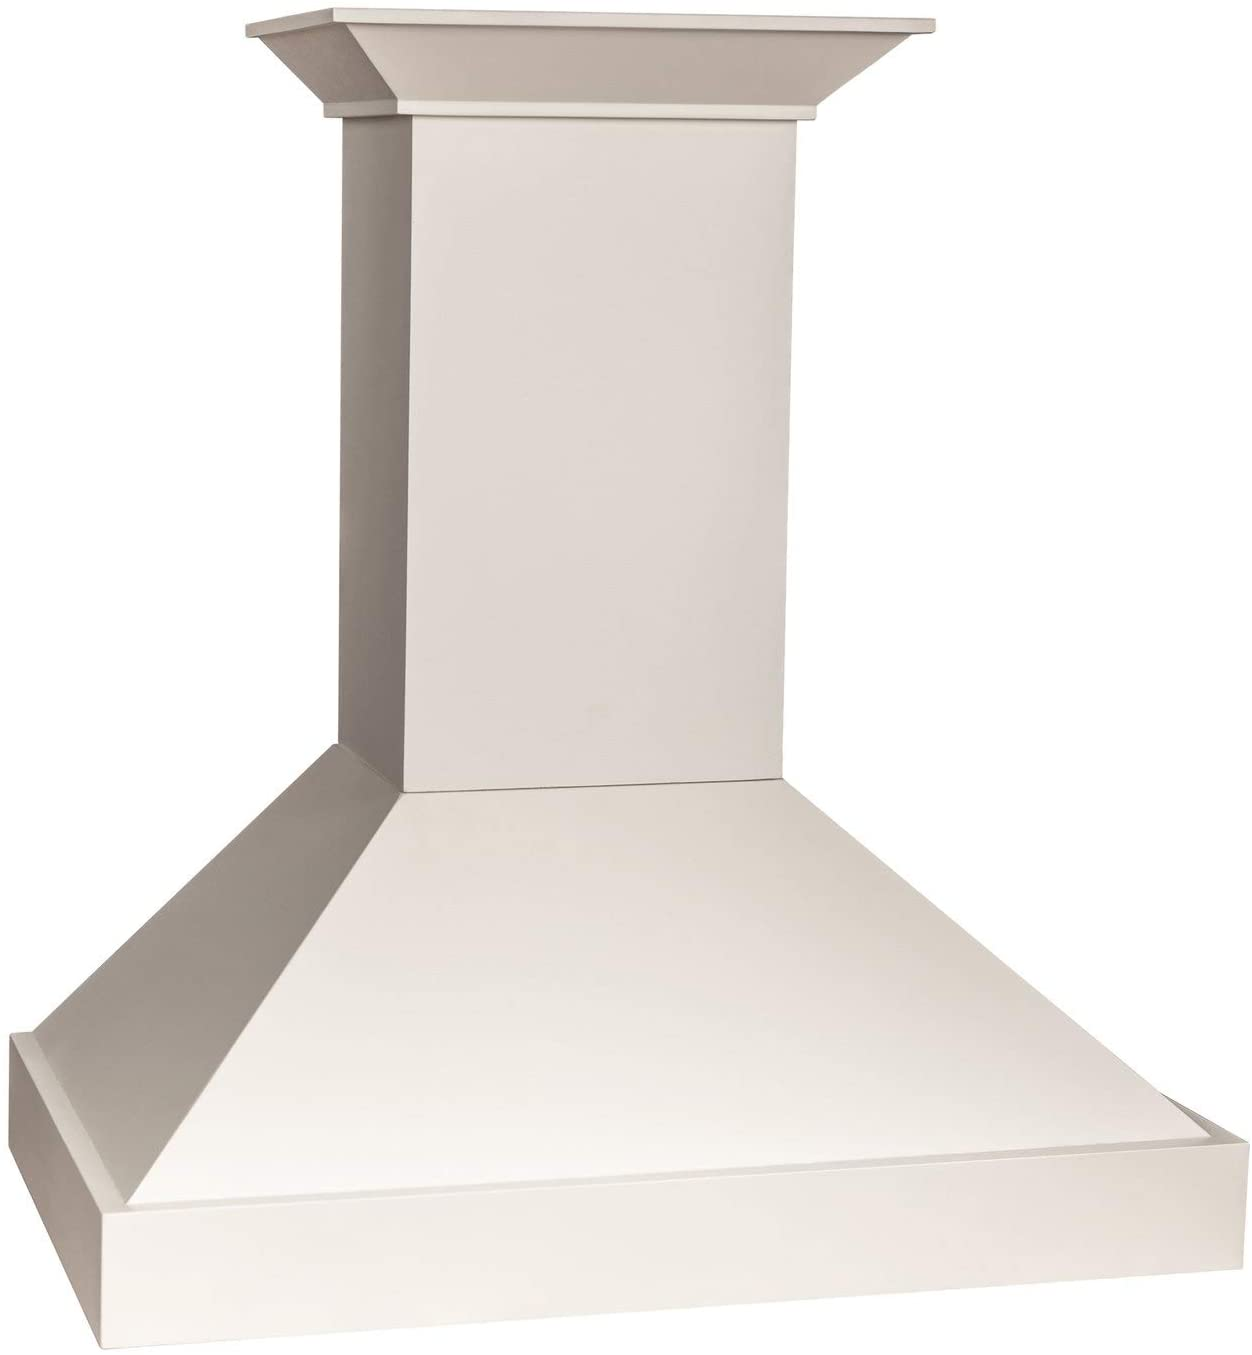 ZLINE 30 in. Wooden Wall Mount Range Hood in White - Includes Motor